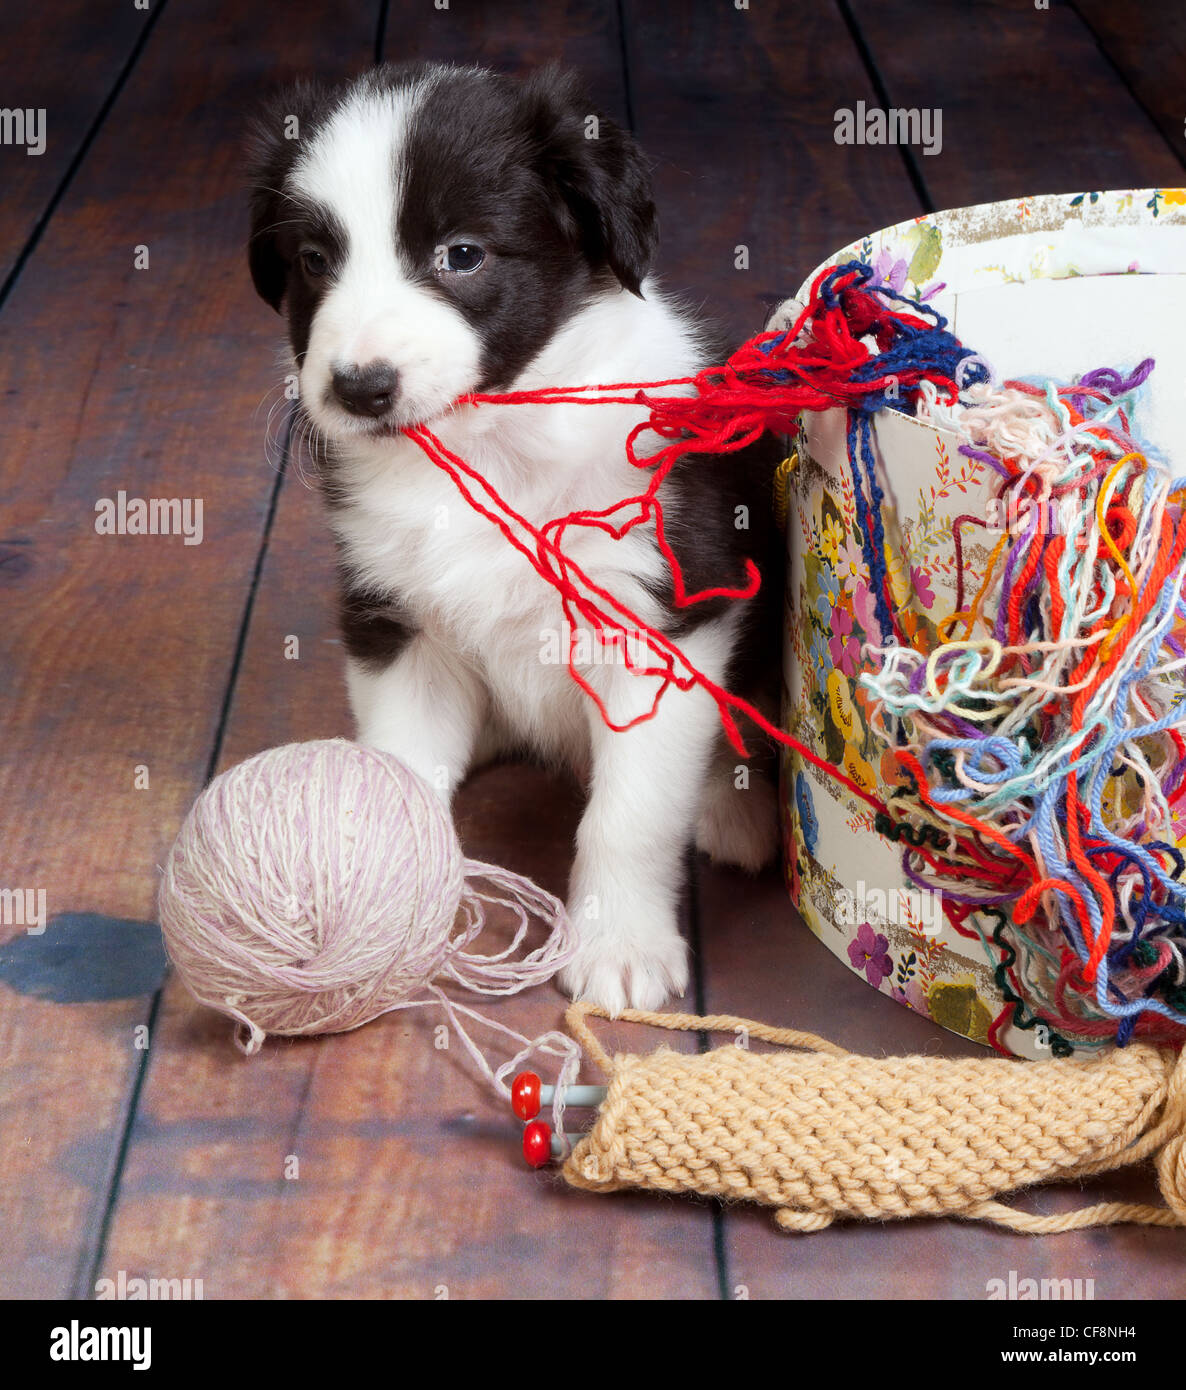 Little puppy dog making a mess of balls of wool - Stock Image